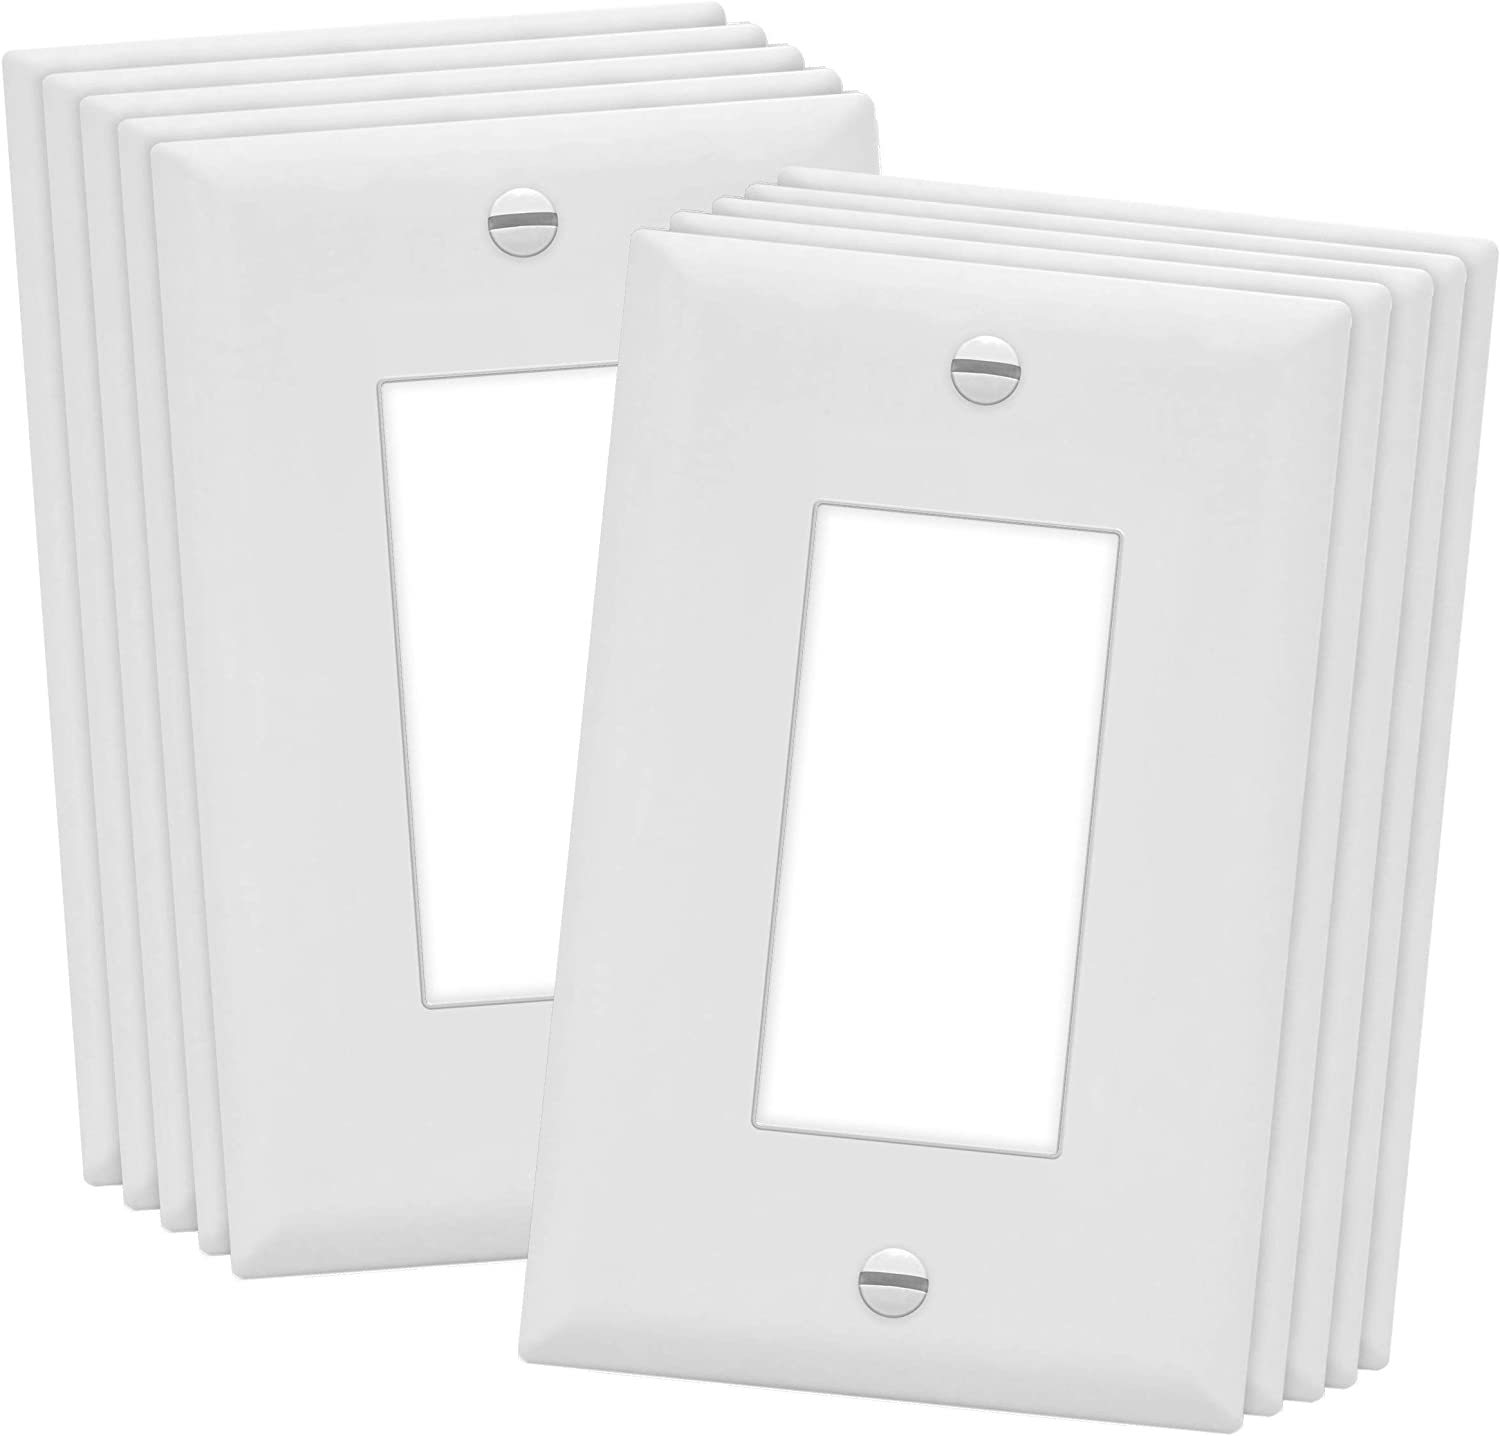 "ENERLITES Decorator Light Switch or Receptacle Outlet Wall Plate, Midway Size 1-Gang 4.88"" x 3.11"", Polycarbonate Thermoplastic, UL Listed, 8831M-W-10PCS, White (10 Pack)"